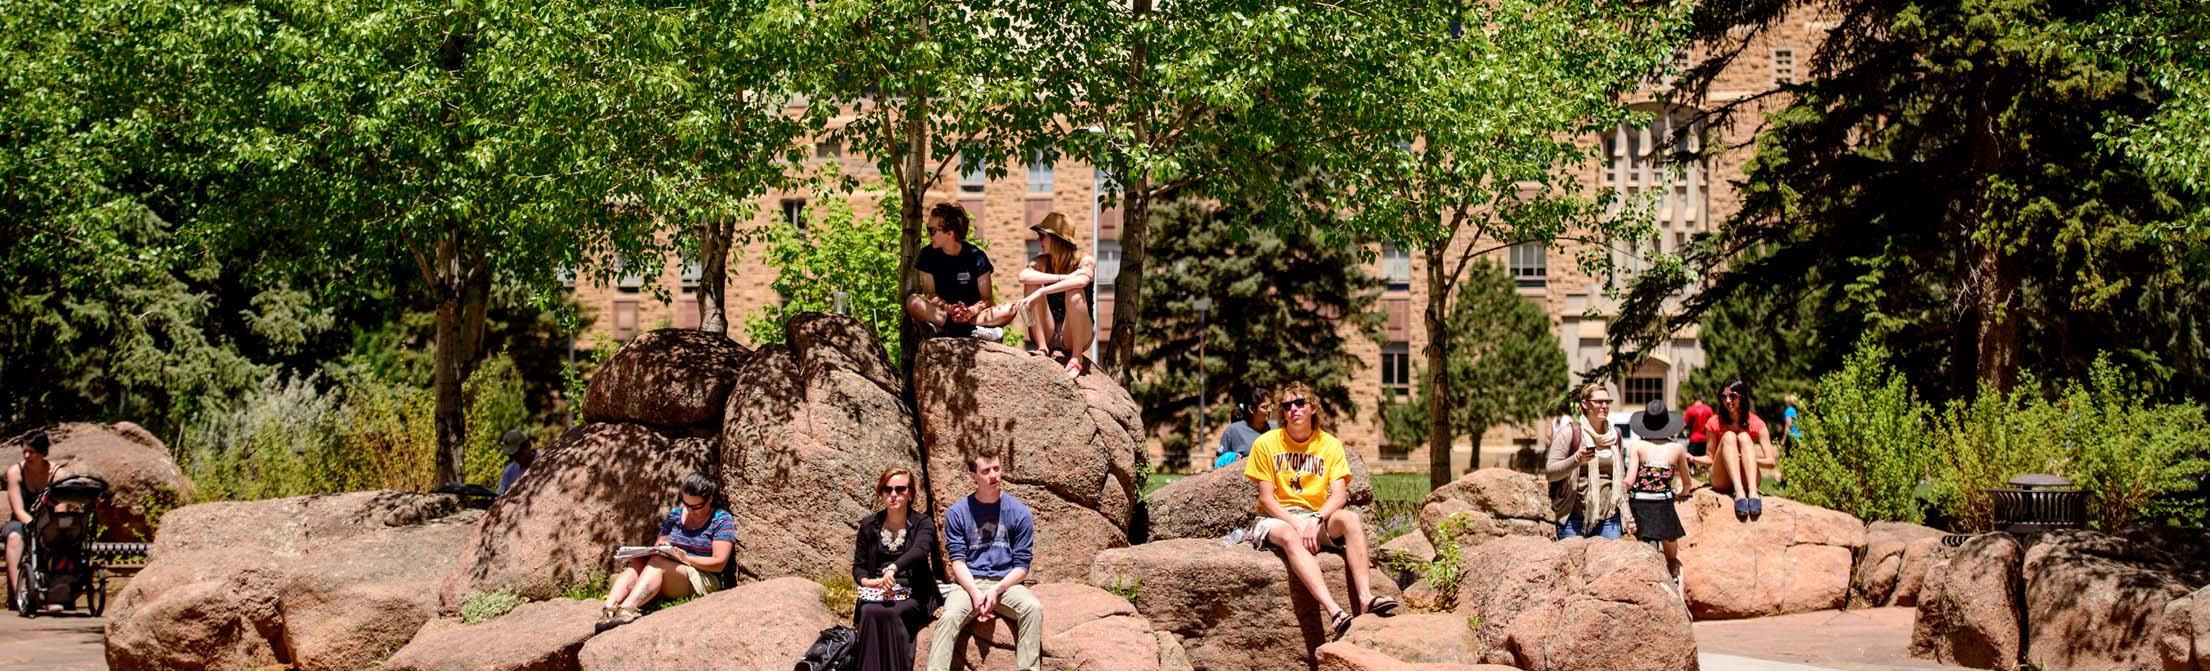 Students on rocks